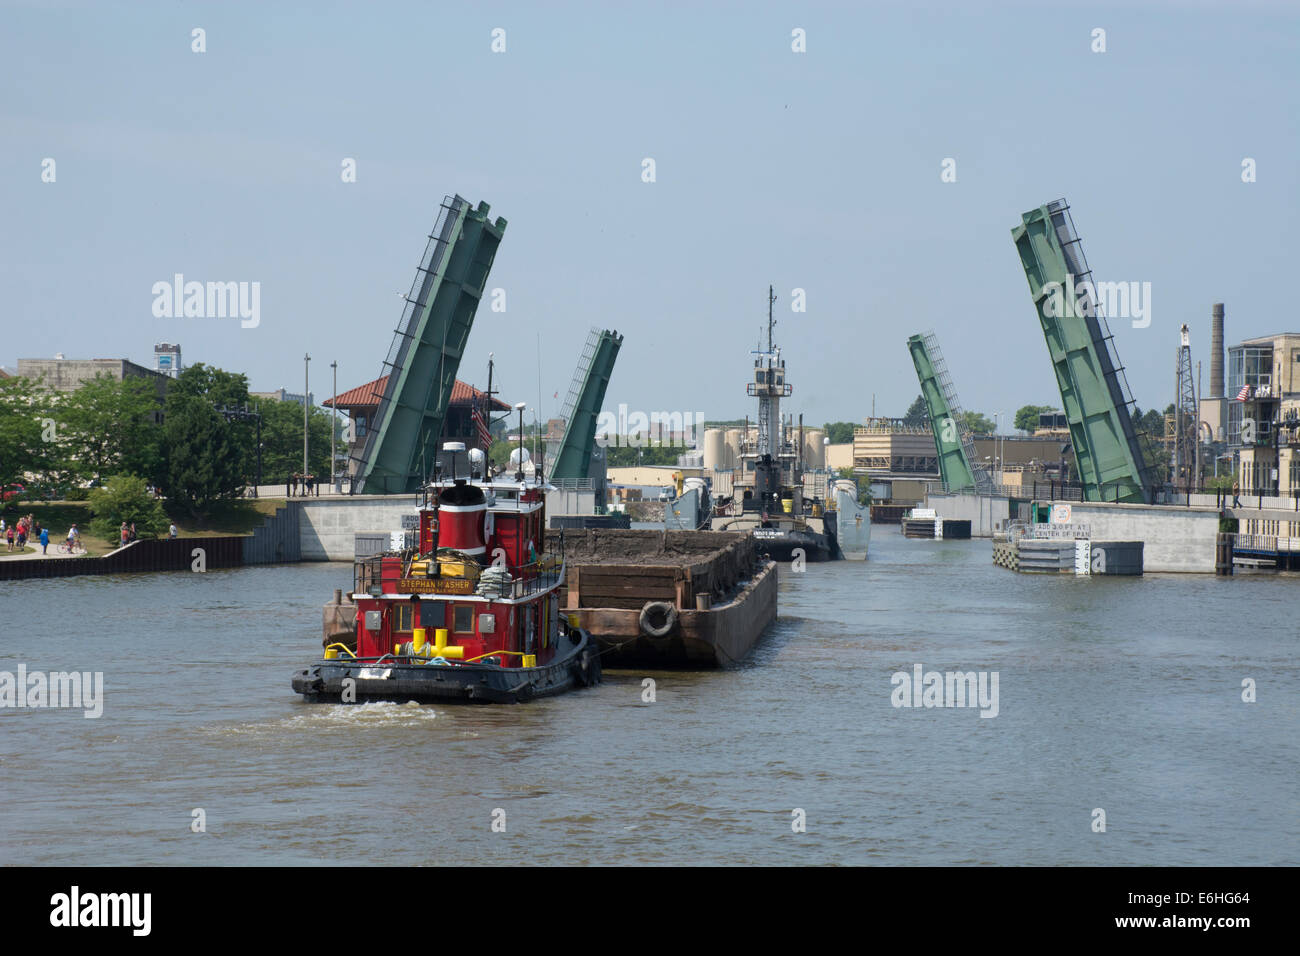 Wisconsin, Manitowoc. Manitowoc River. Tugboat and barge sailing up the Manitowoc River through downtown, lift bridges - Stock Image